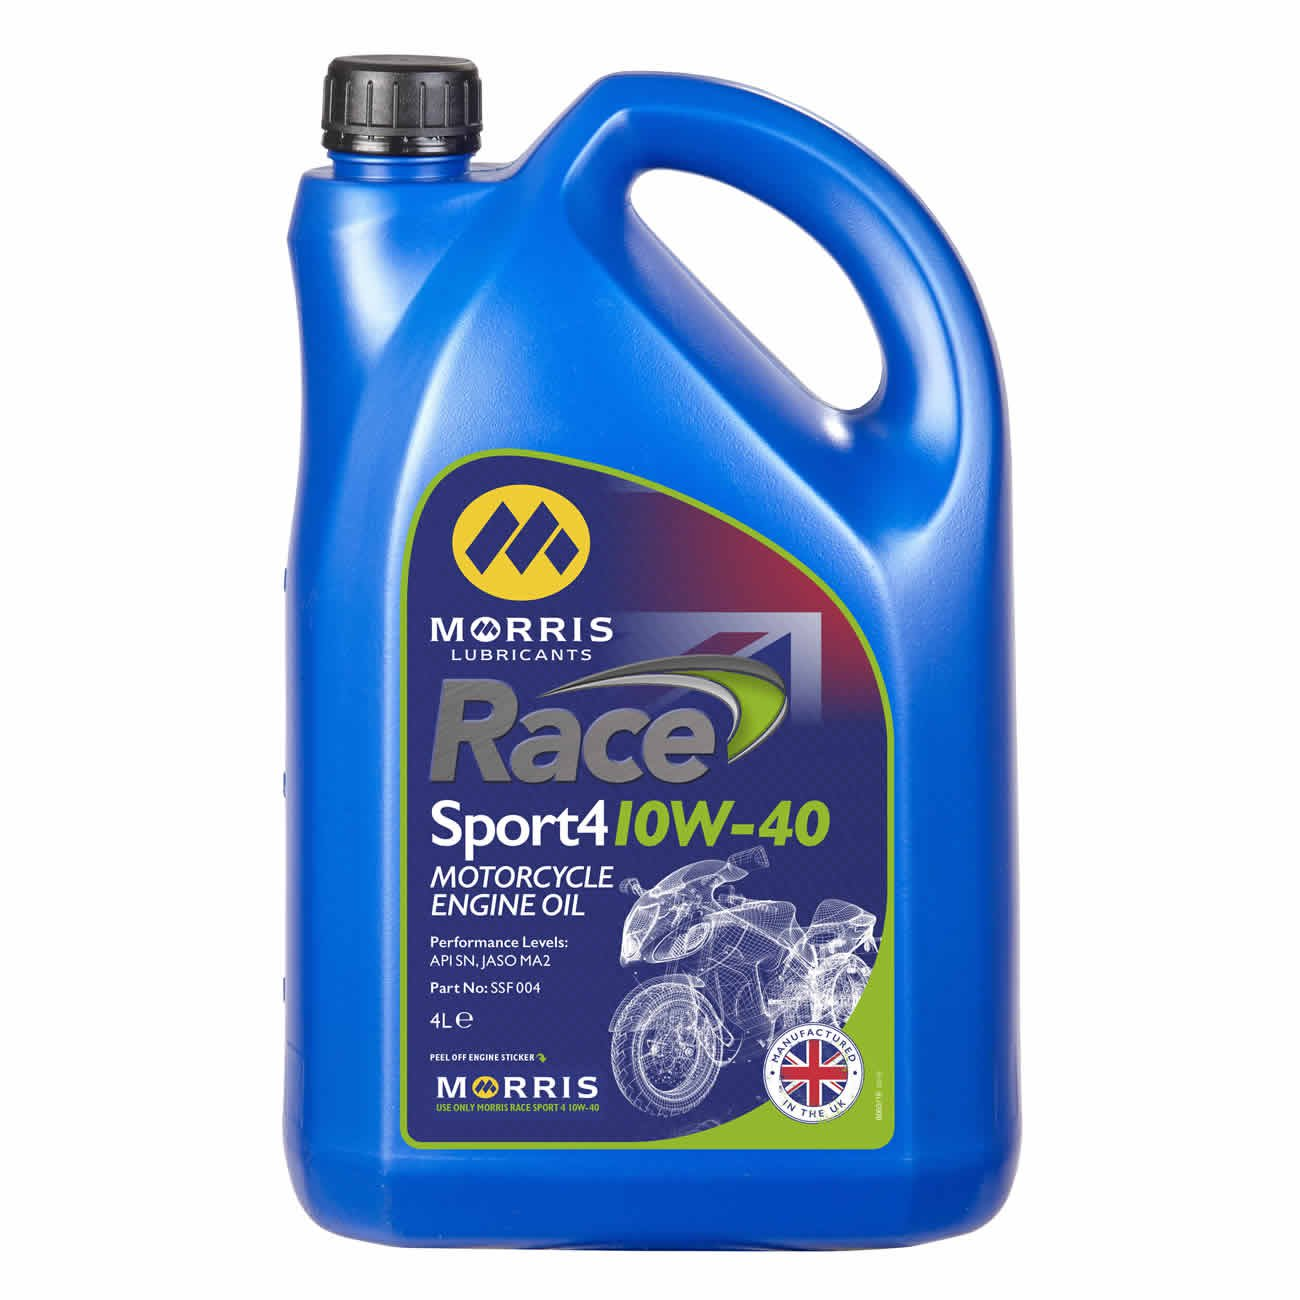 Race Sport 4 10W-40, Engine Oil, Morris Lubricants - Averys Motorcycles